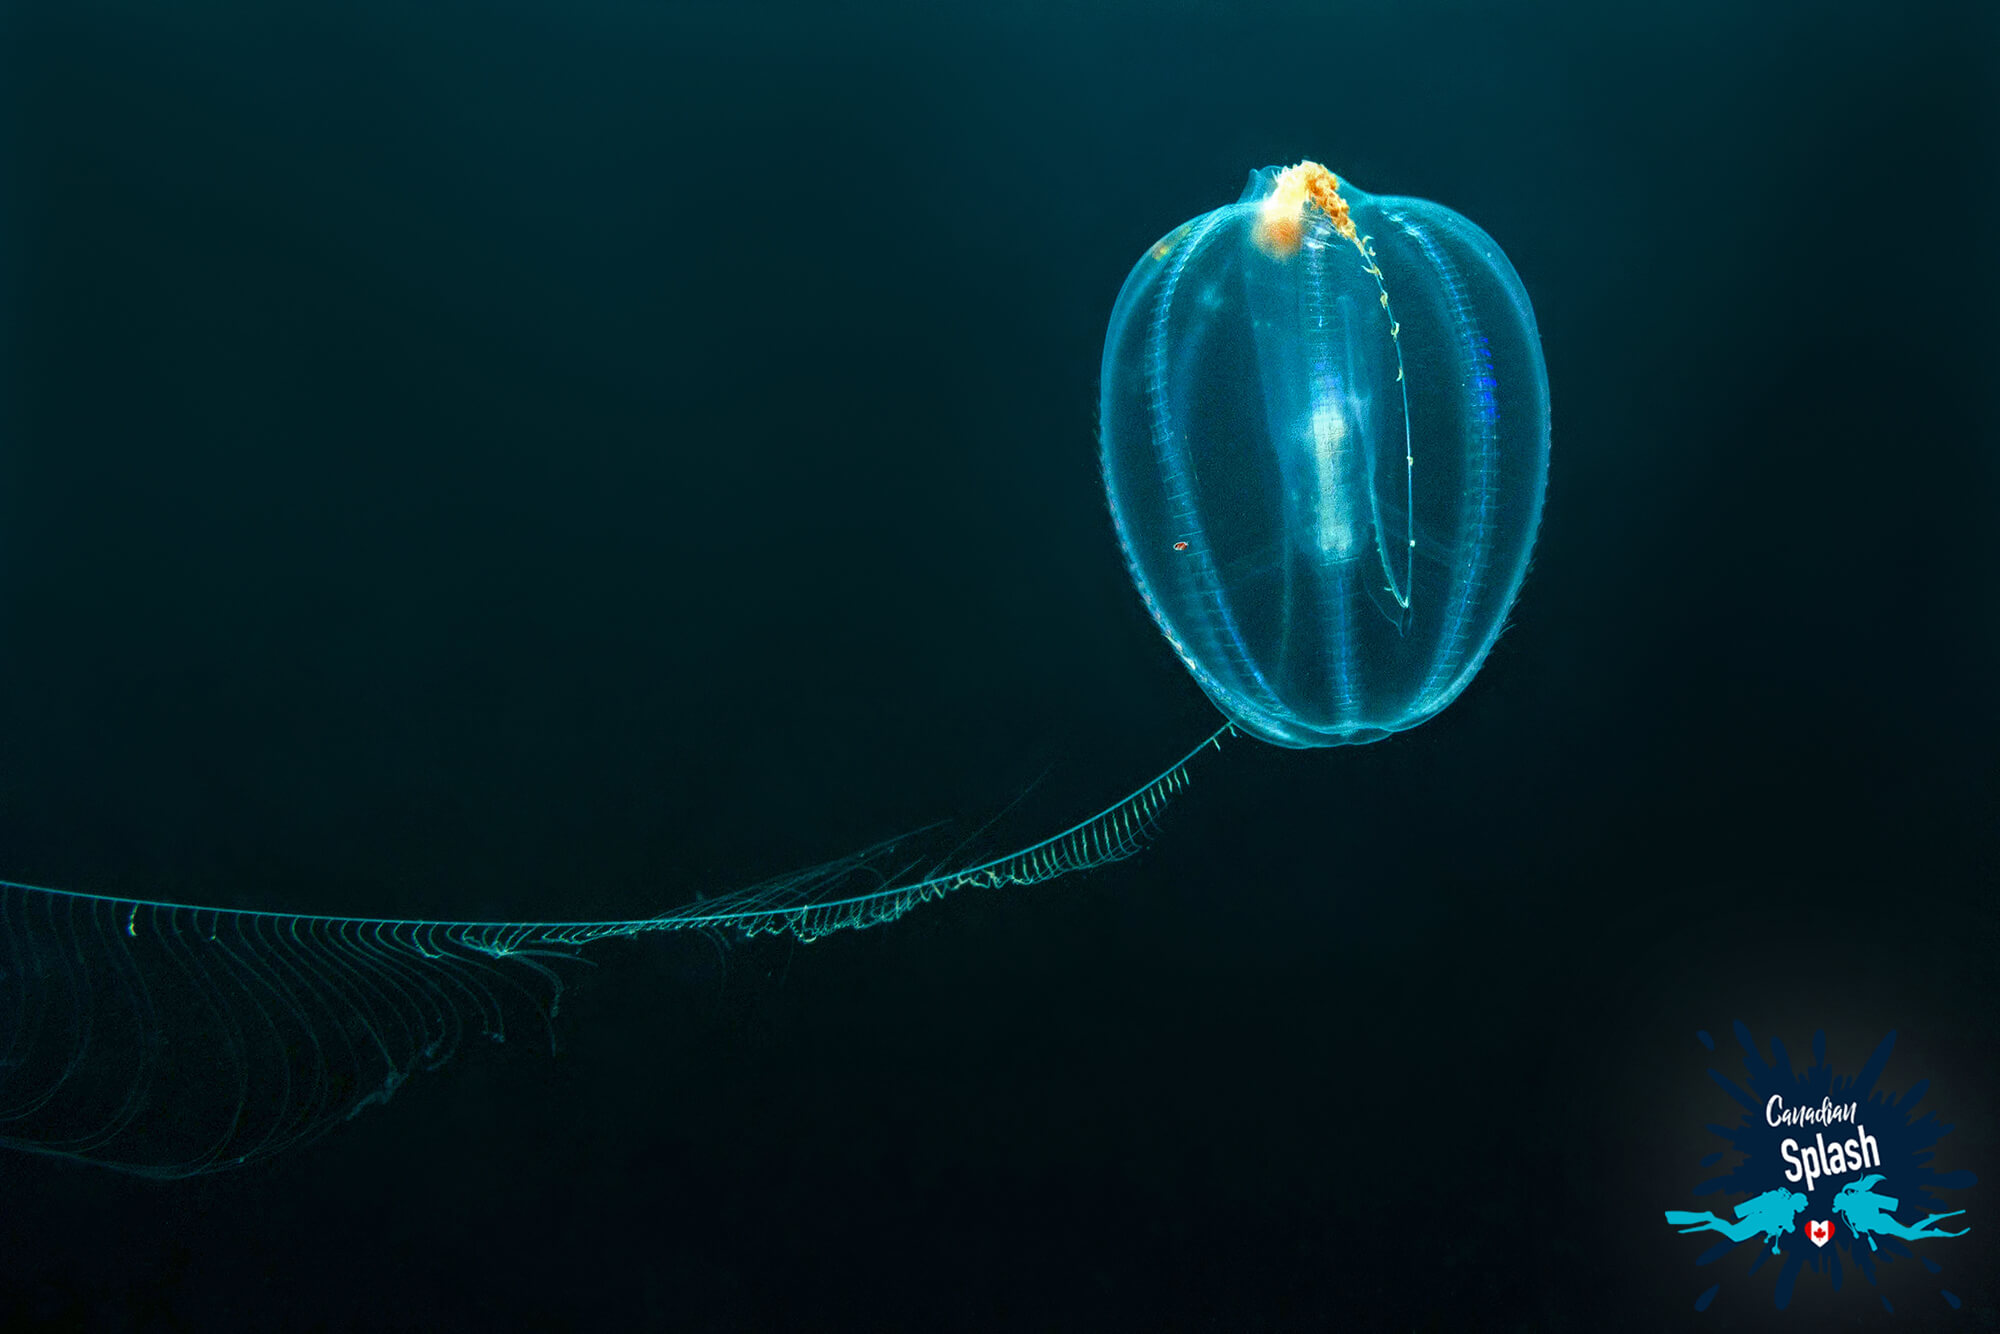 A Sea Gooseberry Comb Jelly In The Black Ocean Of Nova Scotia, St Margarets Bay, Canadian Splash Scuba Diving